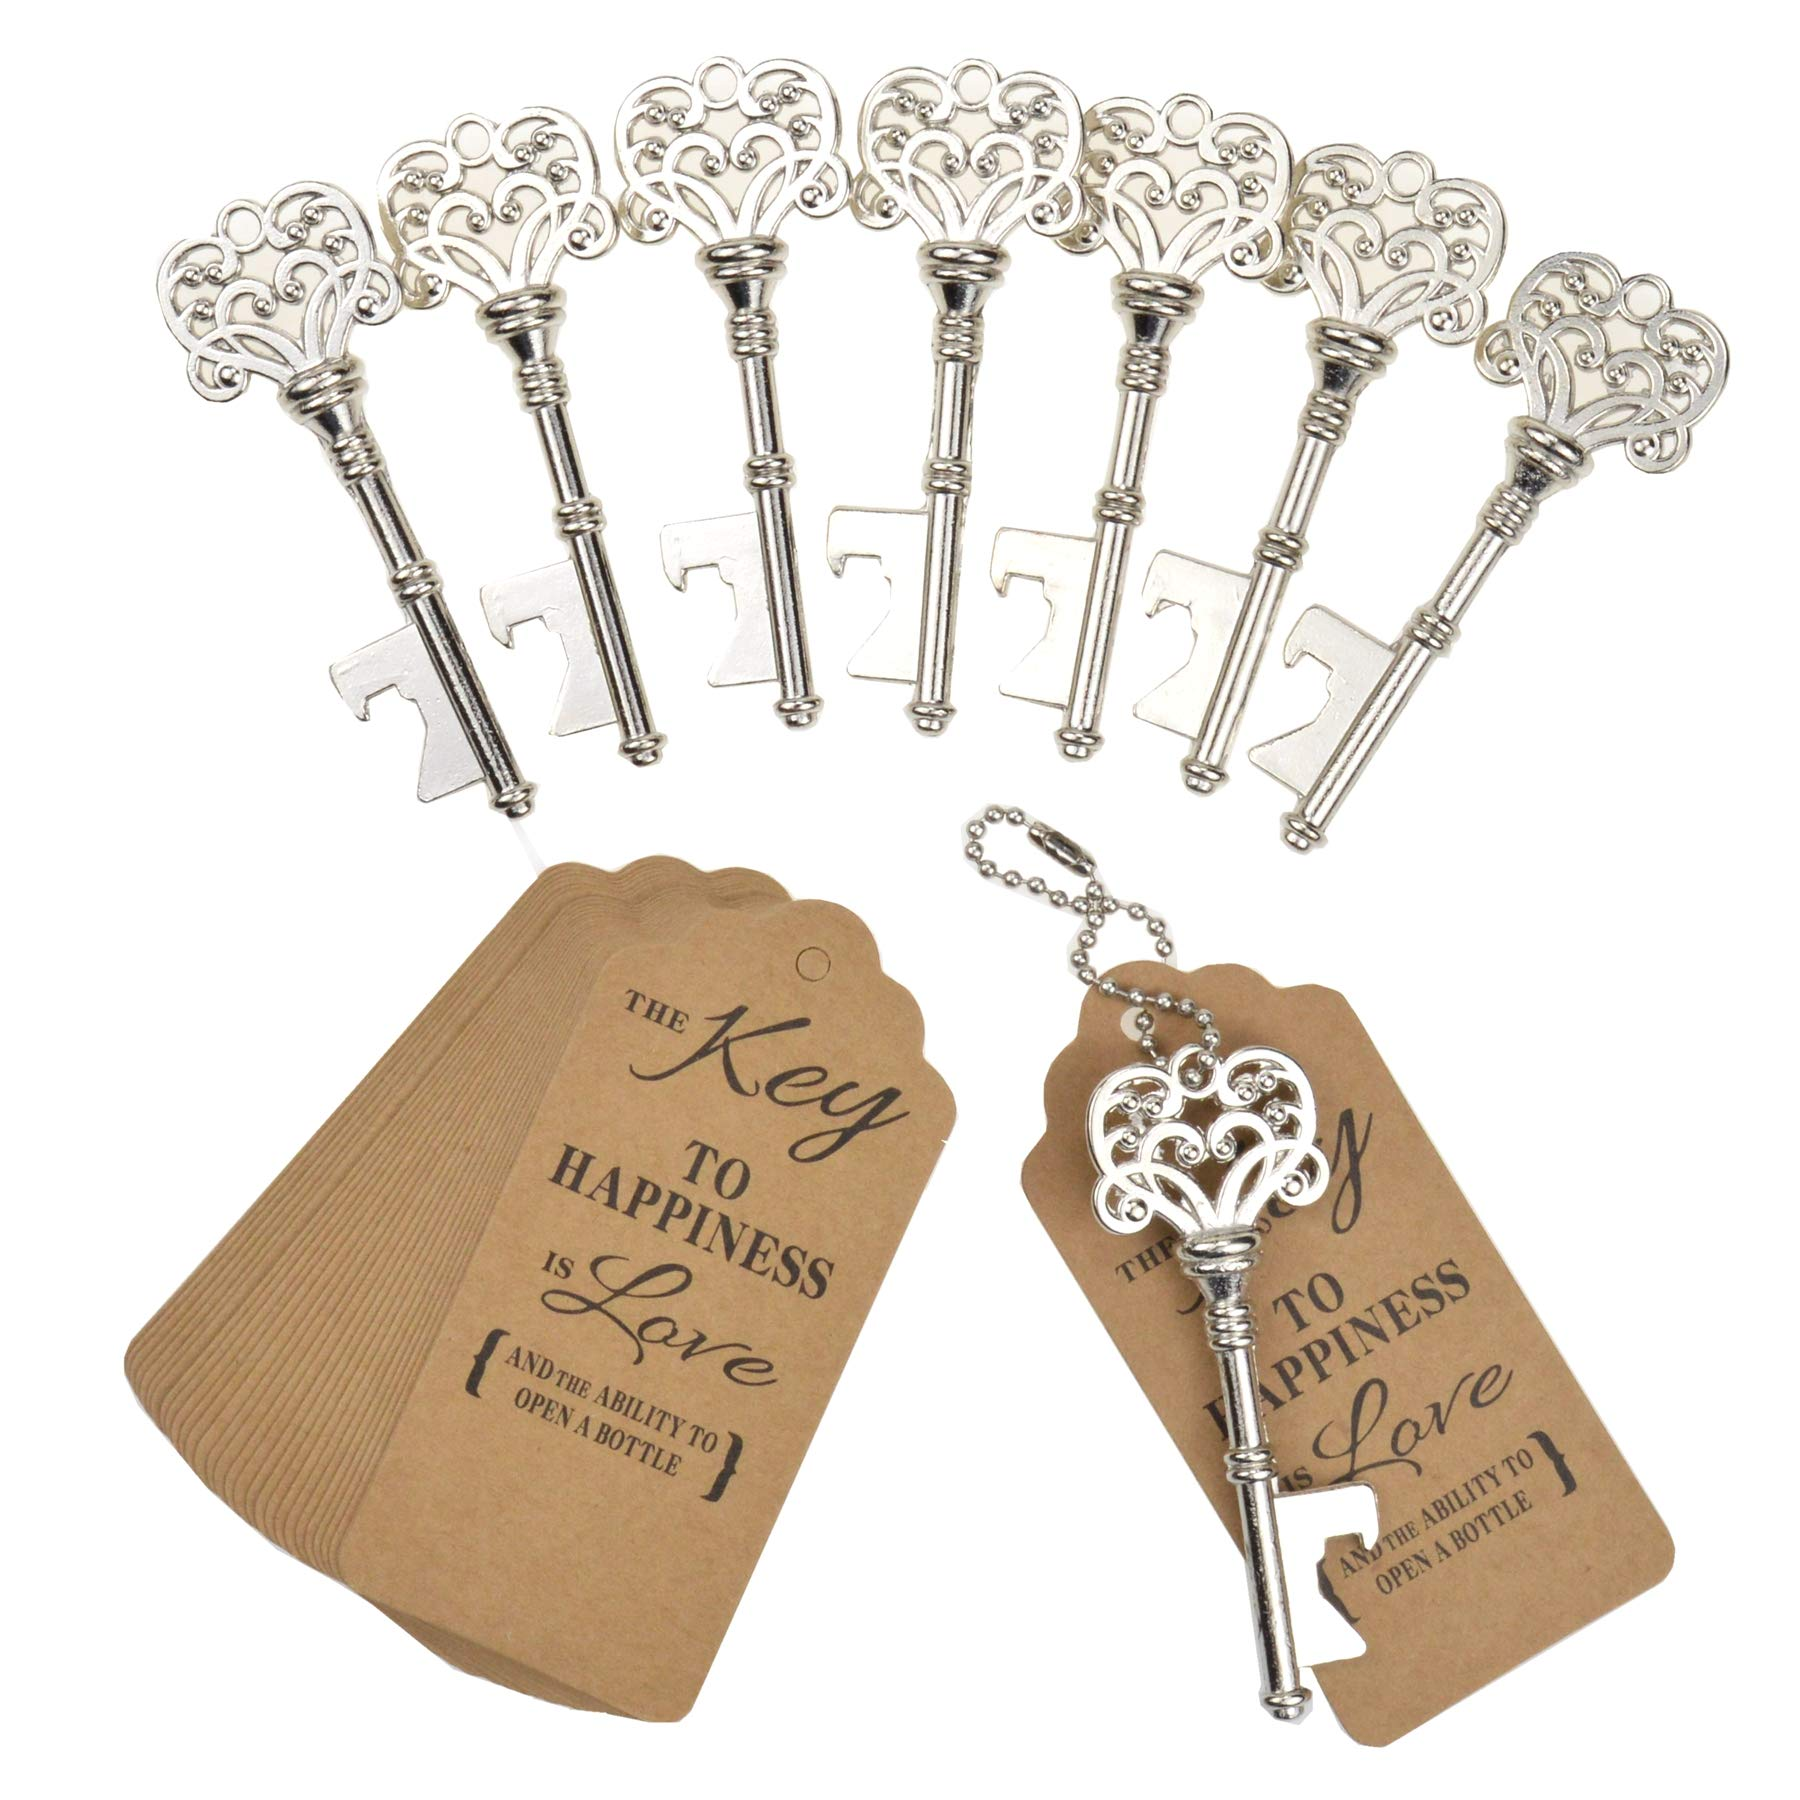 DerBlue 60 PCS Key Bottle Openers,Vintage Skeleton Key Bottle Opener,Skeleton Key Bottle Openers Wedding Favors Antique Rustic Decoration with Heart shaped kraft paper label card (Silver-4) by DerBlue